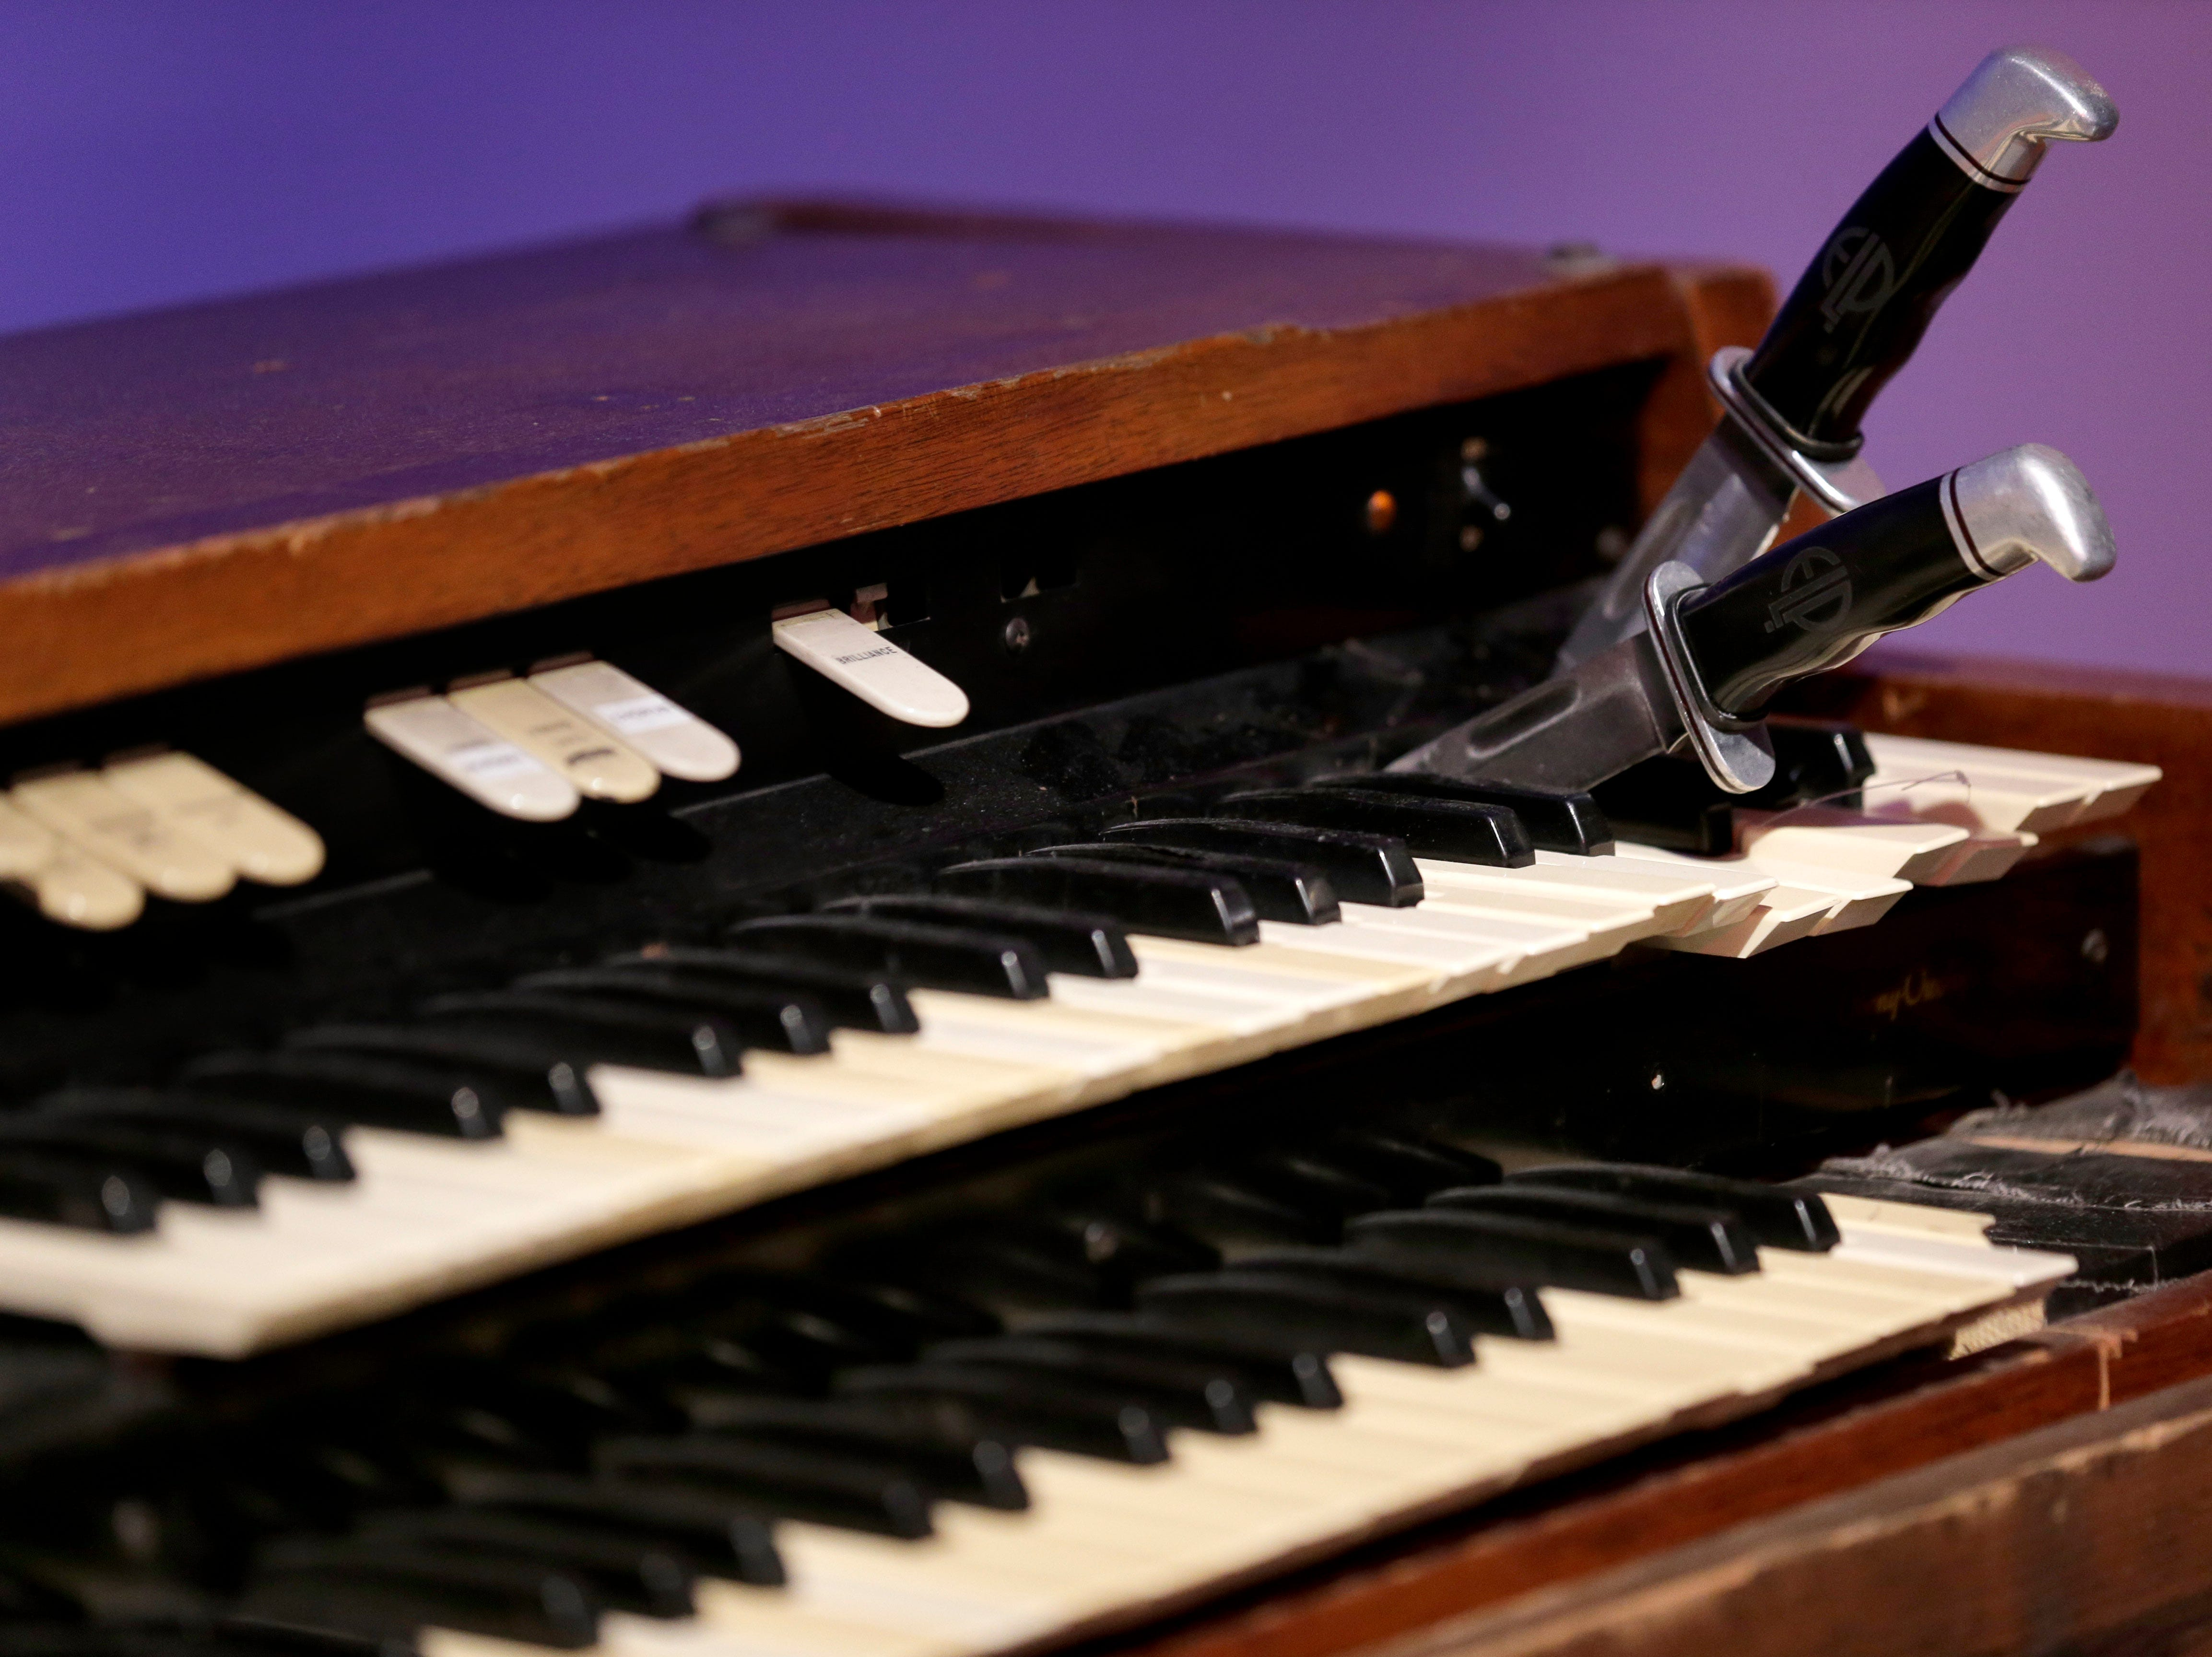 A stunt organ with knives that Keith Emerson used to hold notes on display.